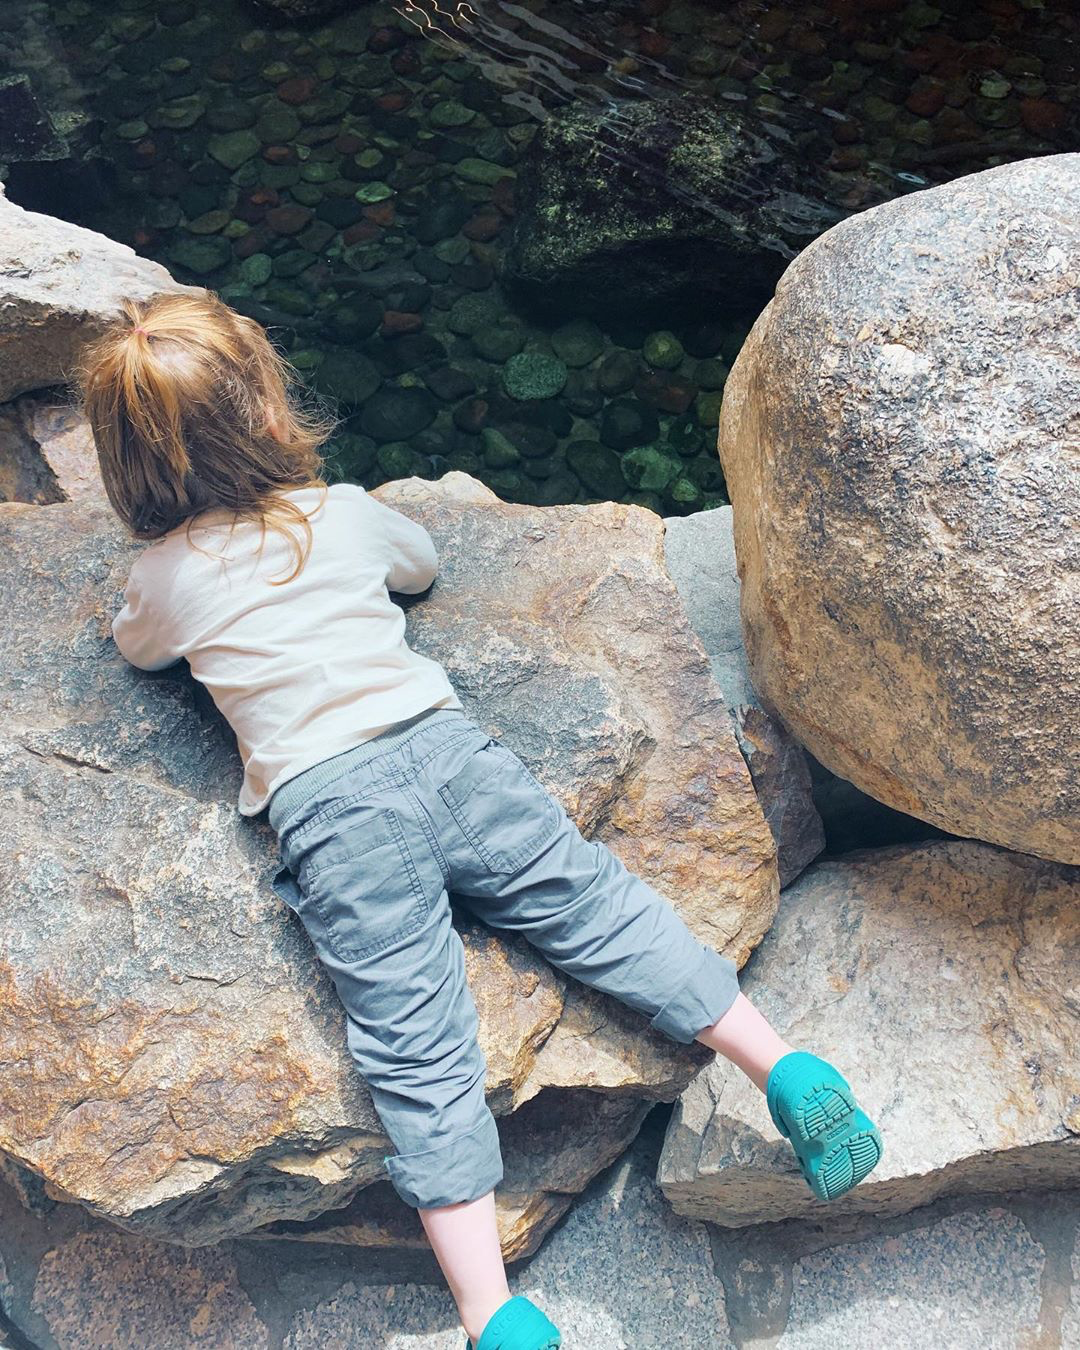 Young child lying on some rocks looking at an indoor pond.